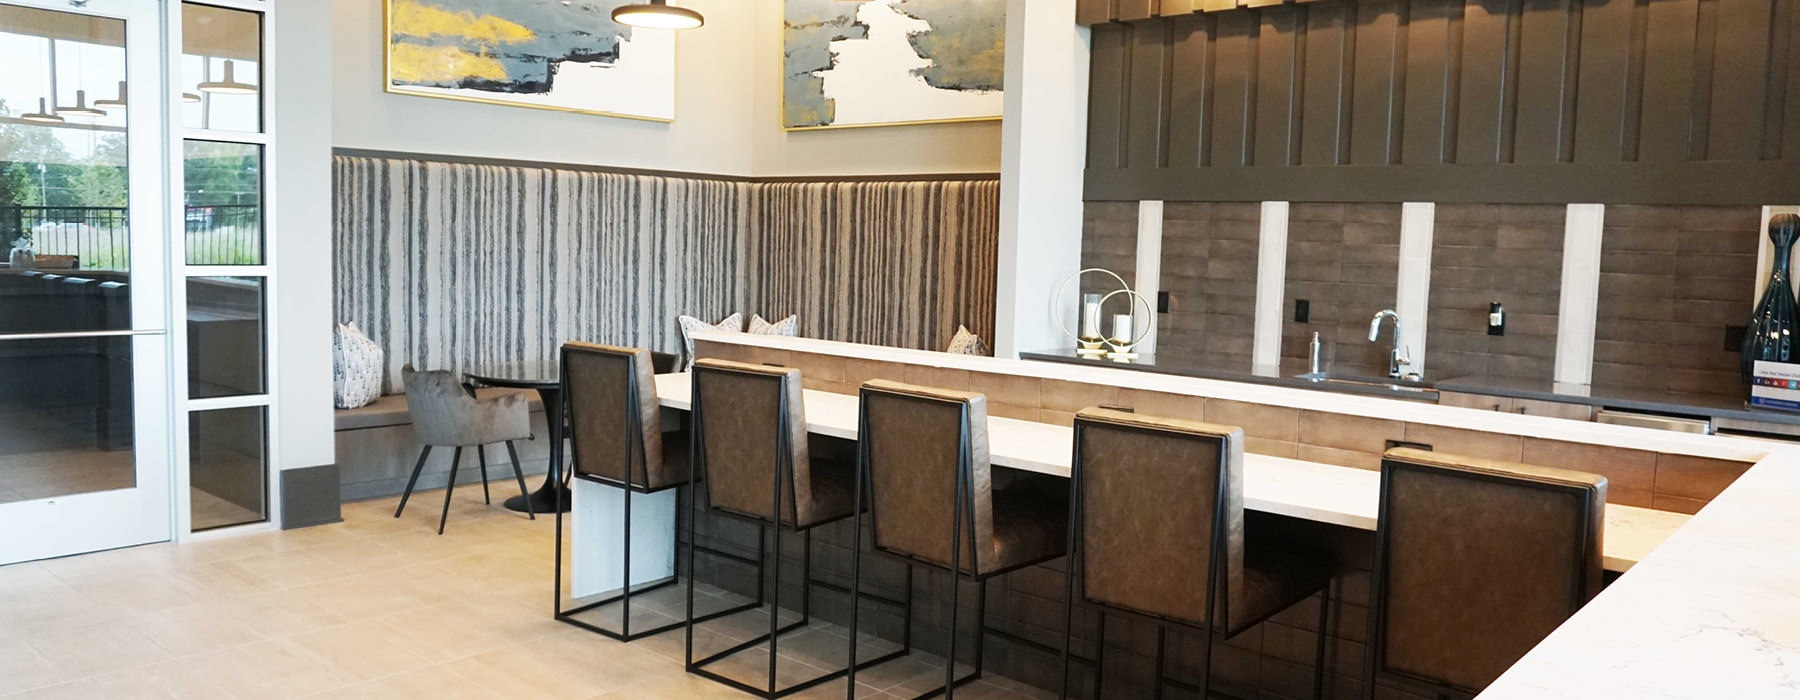 Bistro Area with Coffee Machine and bar seating